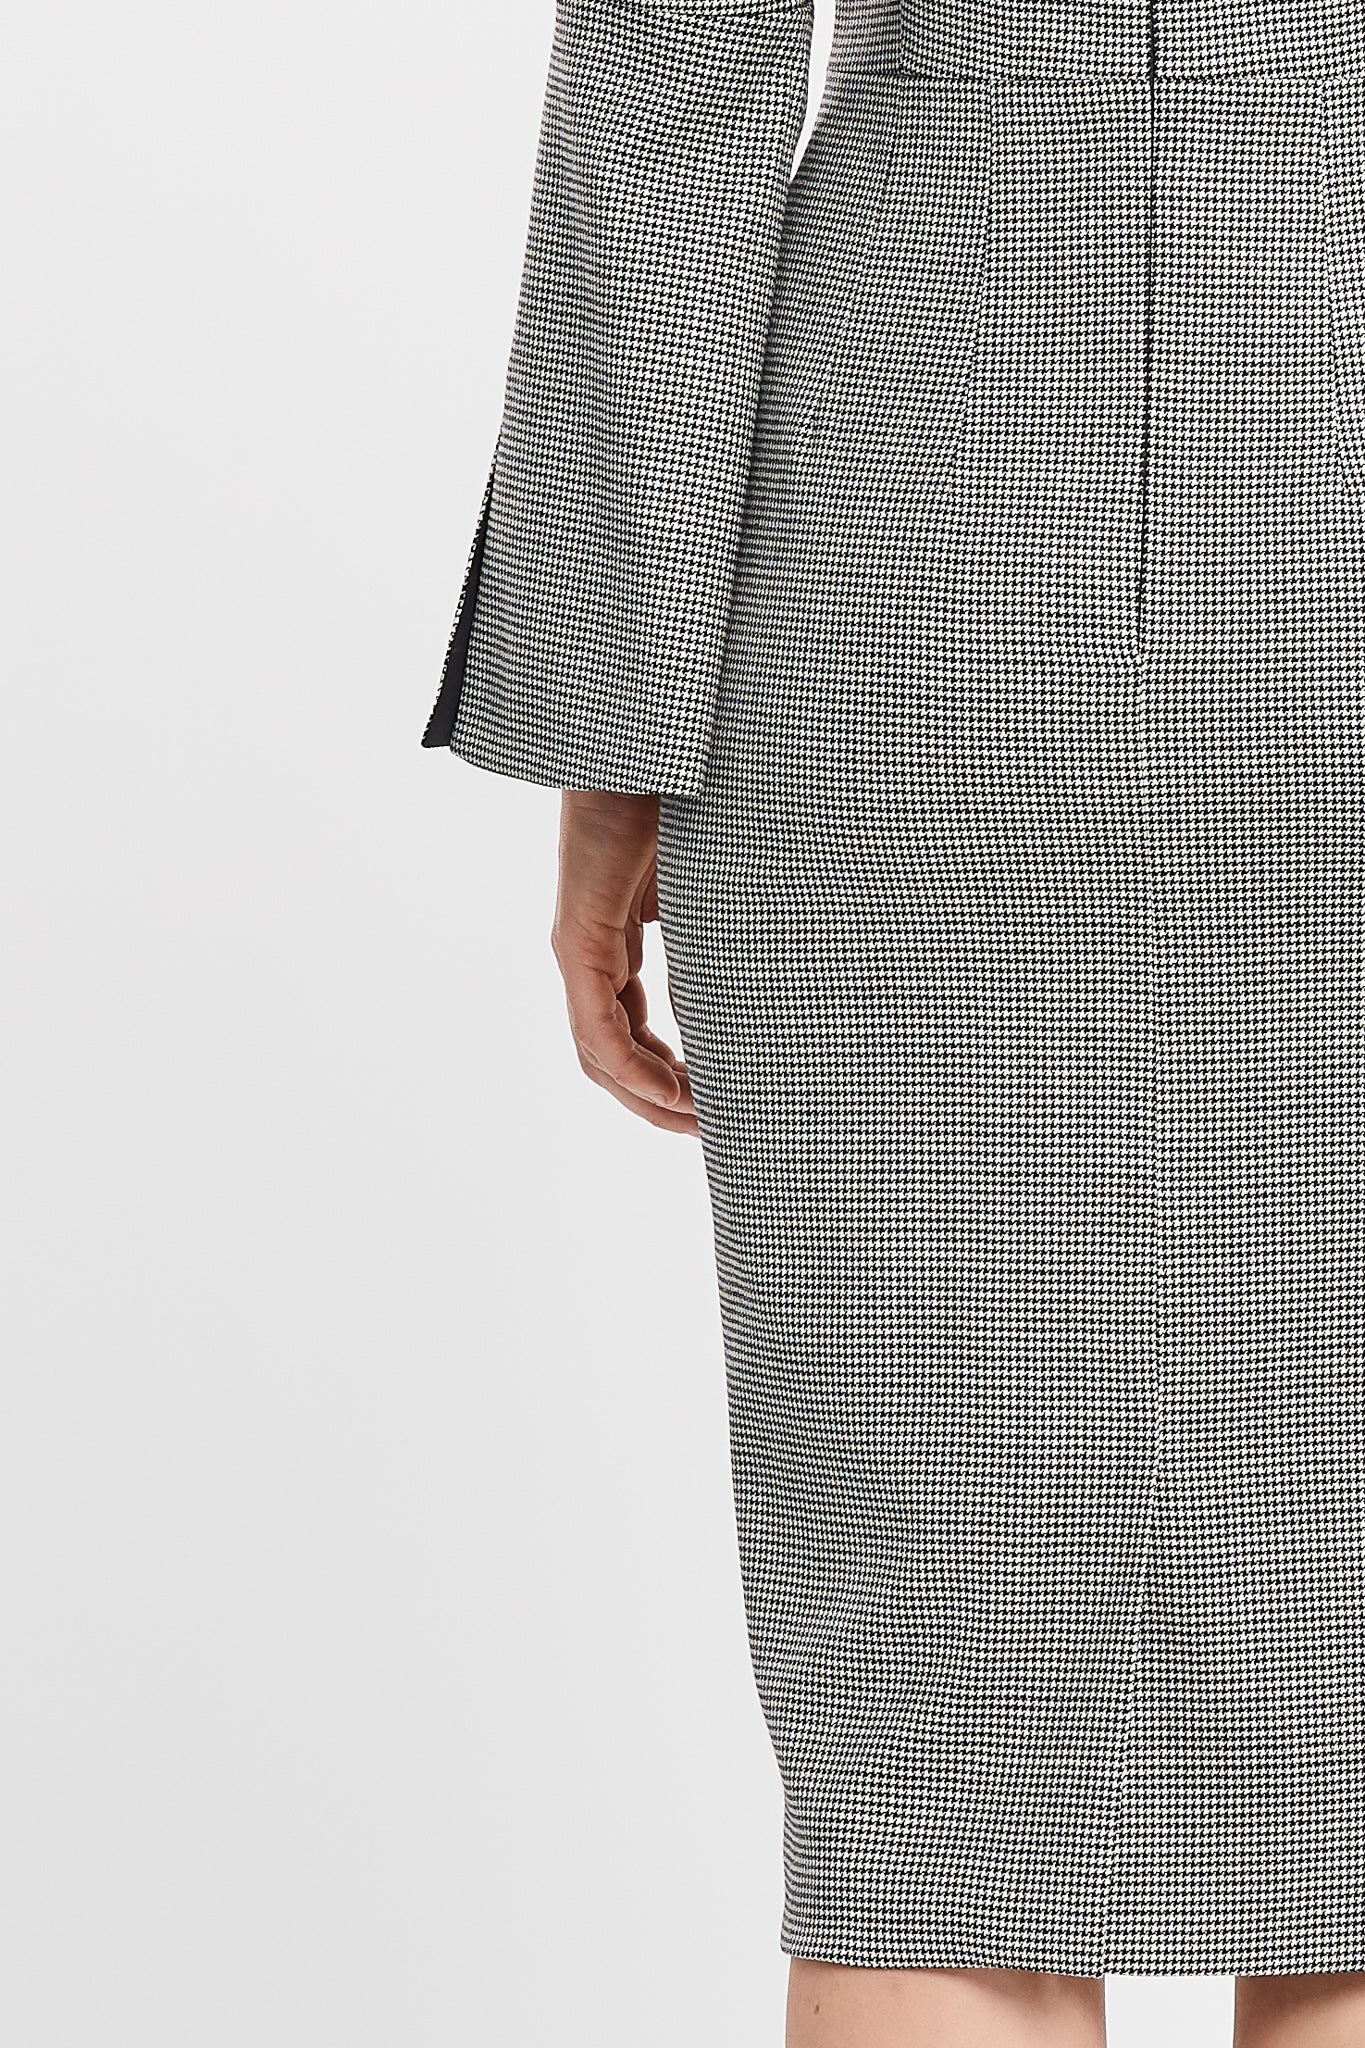 Dina Long Flared Sleeve Sheath Houdstooth Work and Cocktail Dress